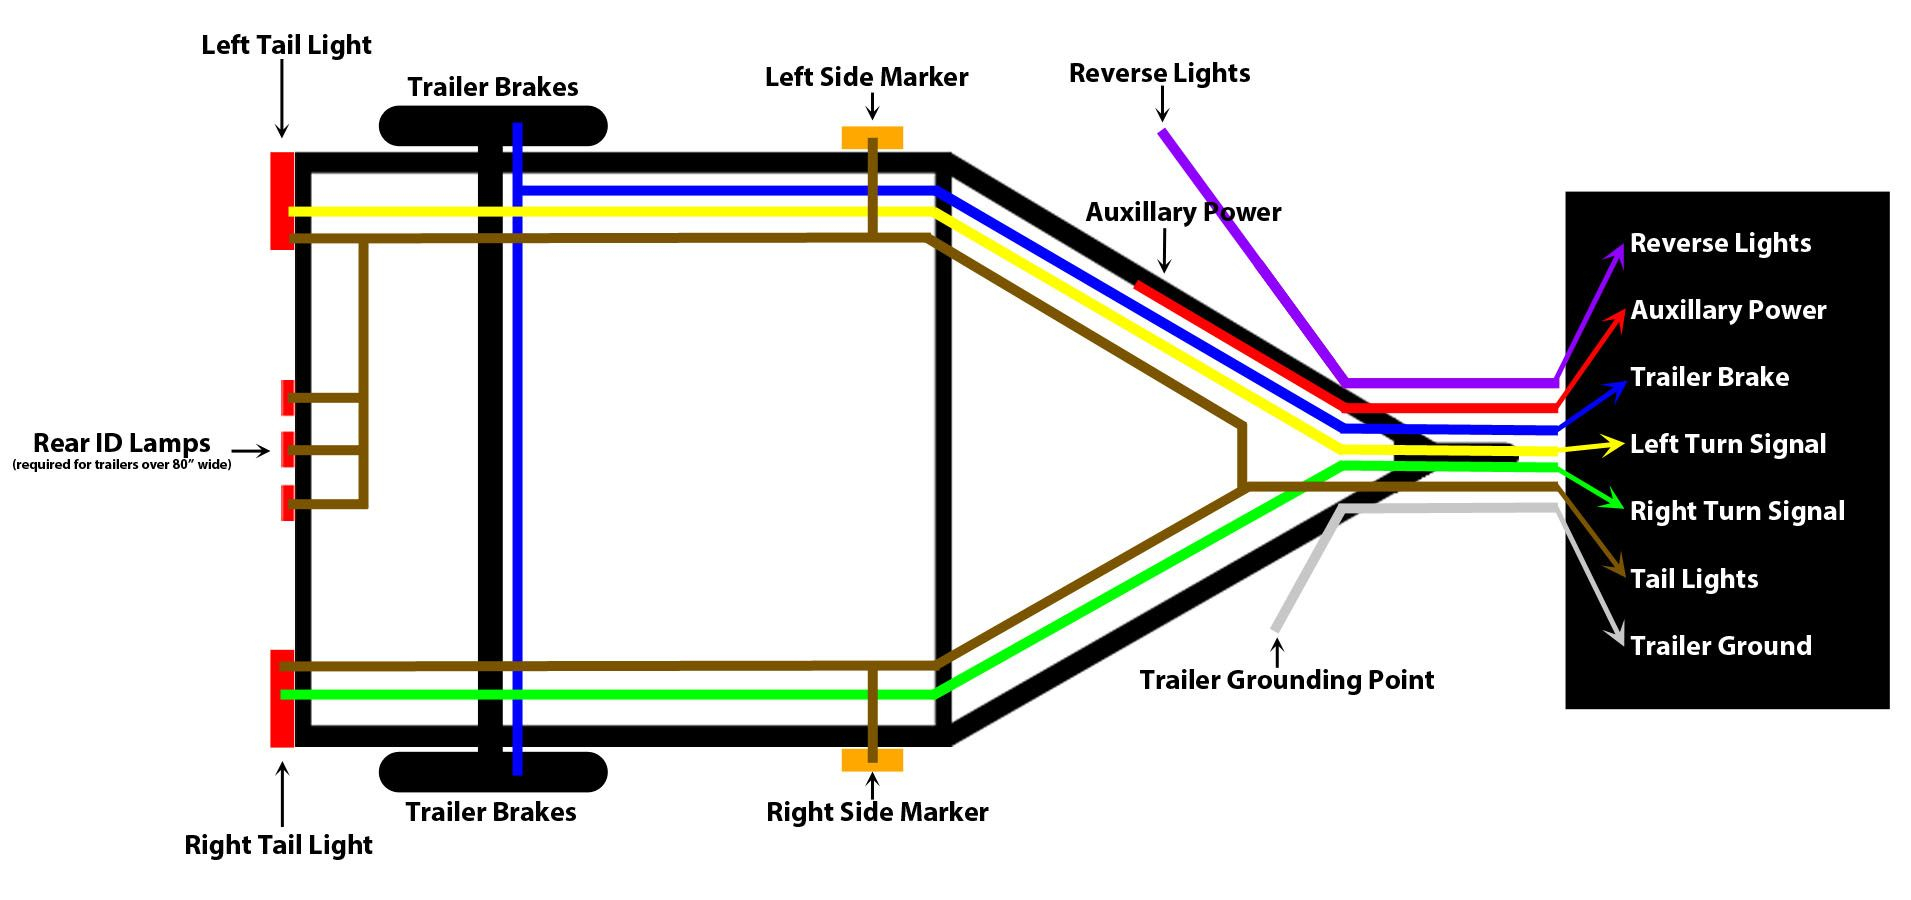 Trailer Wiring Diagram | Reference | Pinterest | Remorque, Remorque - Trailer Wiring Diagram Za